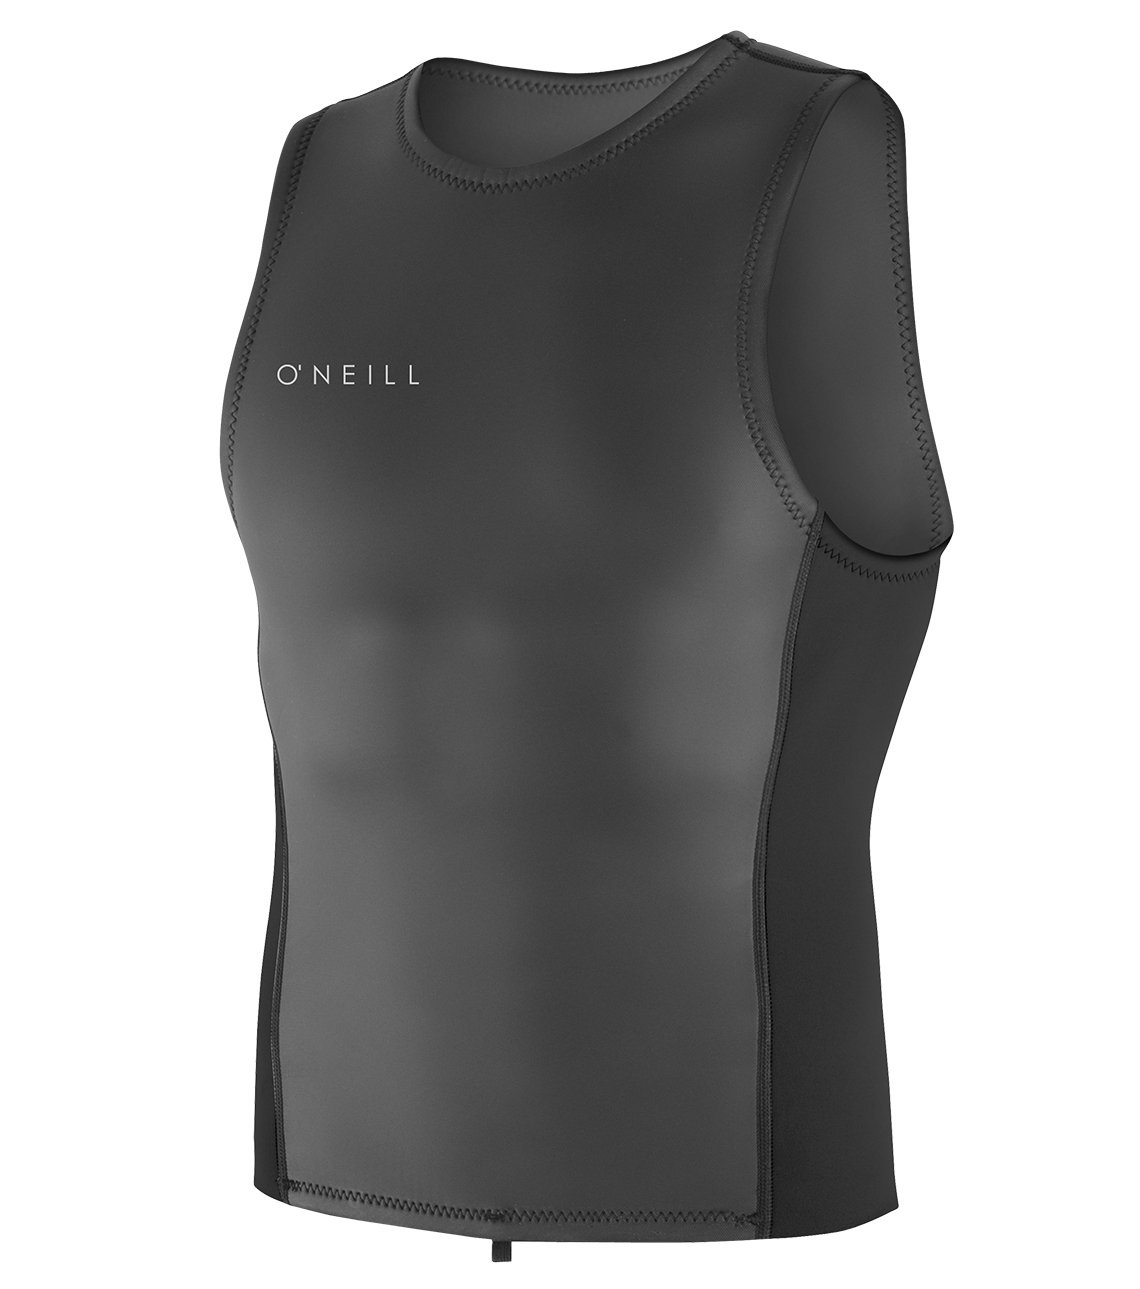 O'Neill Men's Reactor-2 2mm Pull Over Vest, Black, Medium by O'Neill Wetsuits